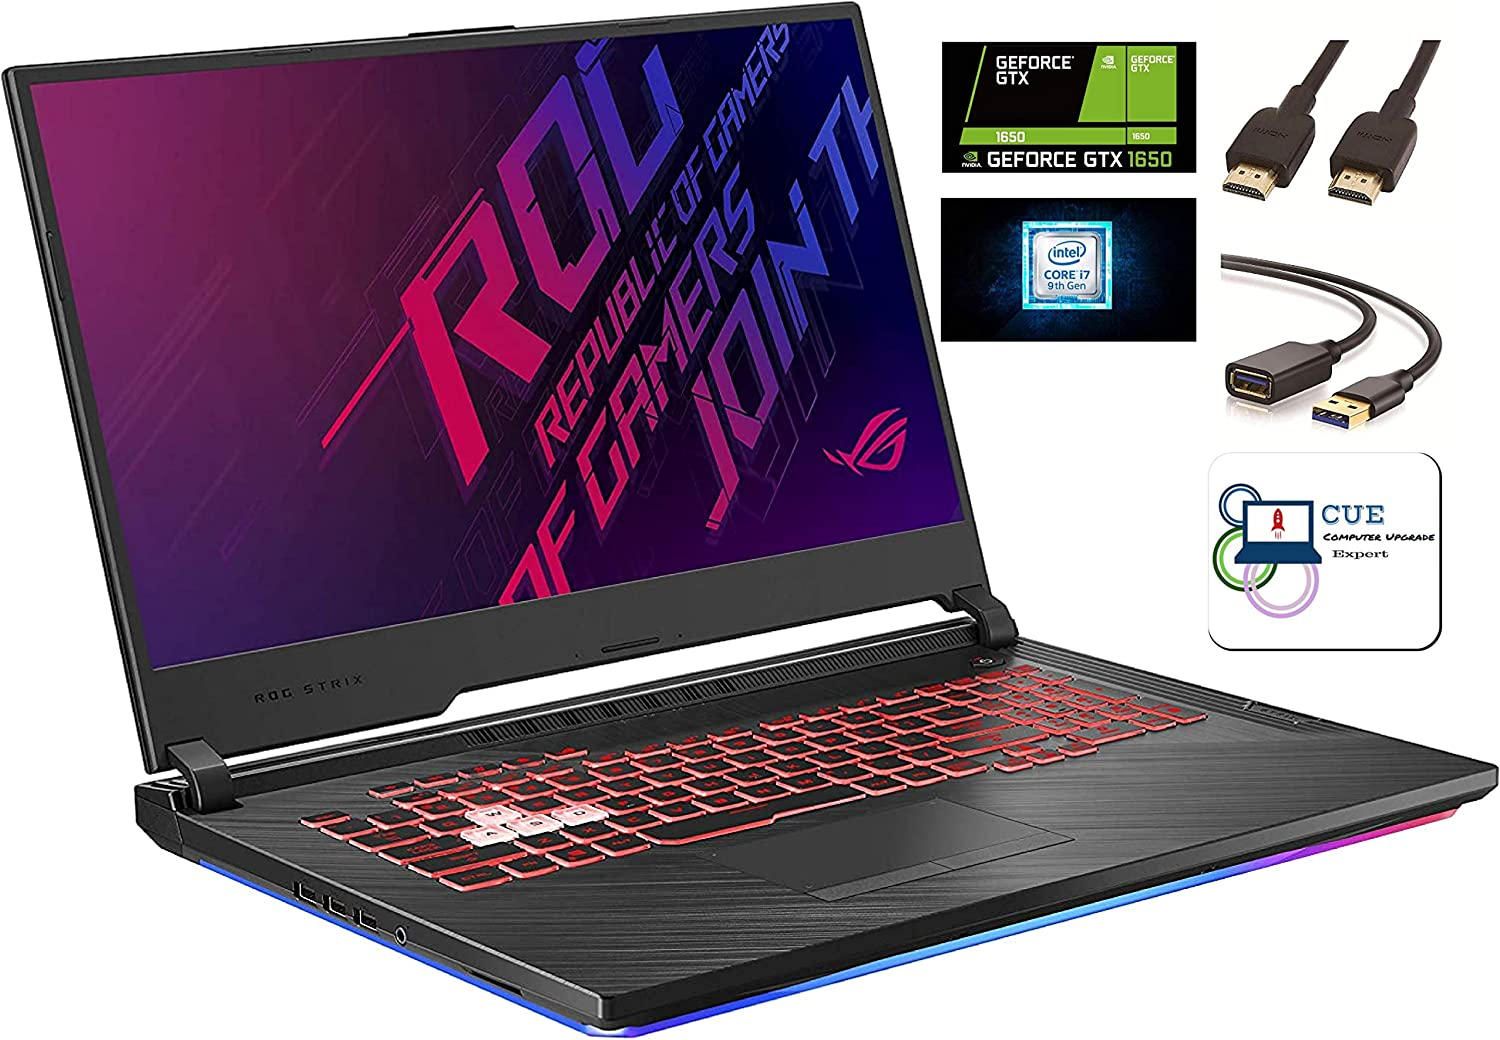 Amazon Com Asus Rog Strix G Gaming Laptop 17 3 120hz Ips Type Fhd Nvidia Geforce Gtx 1650 Intel 6 Core I7 9750h Backlit Rgb Kb 802 11 Ac Bluetooth Windows 10 Home Cue Accessories 32gb